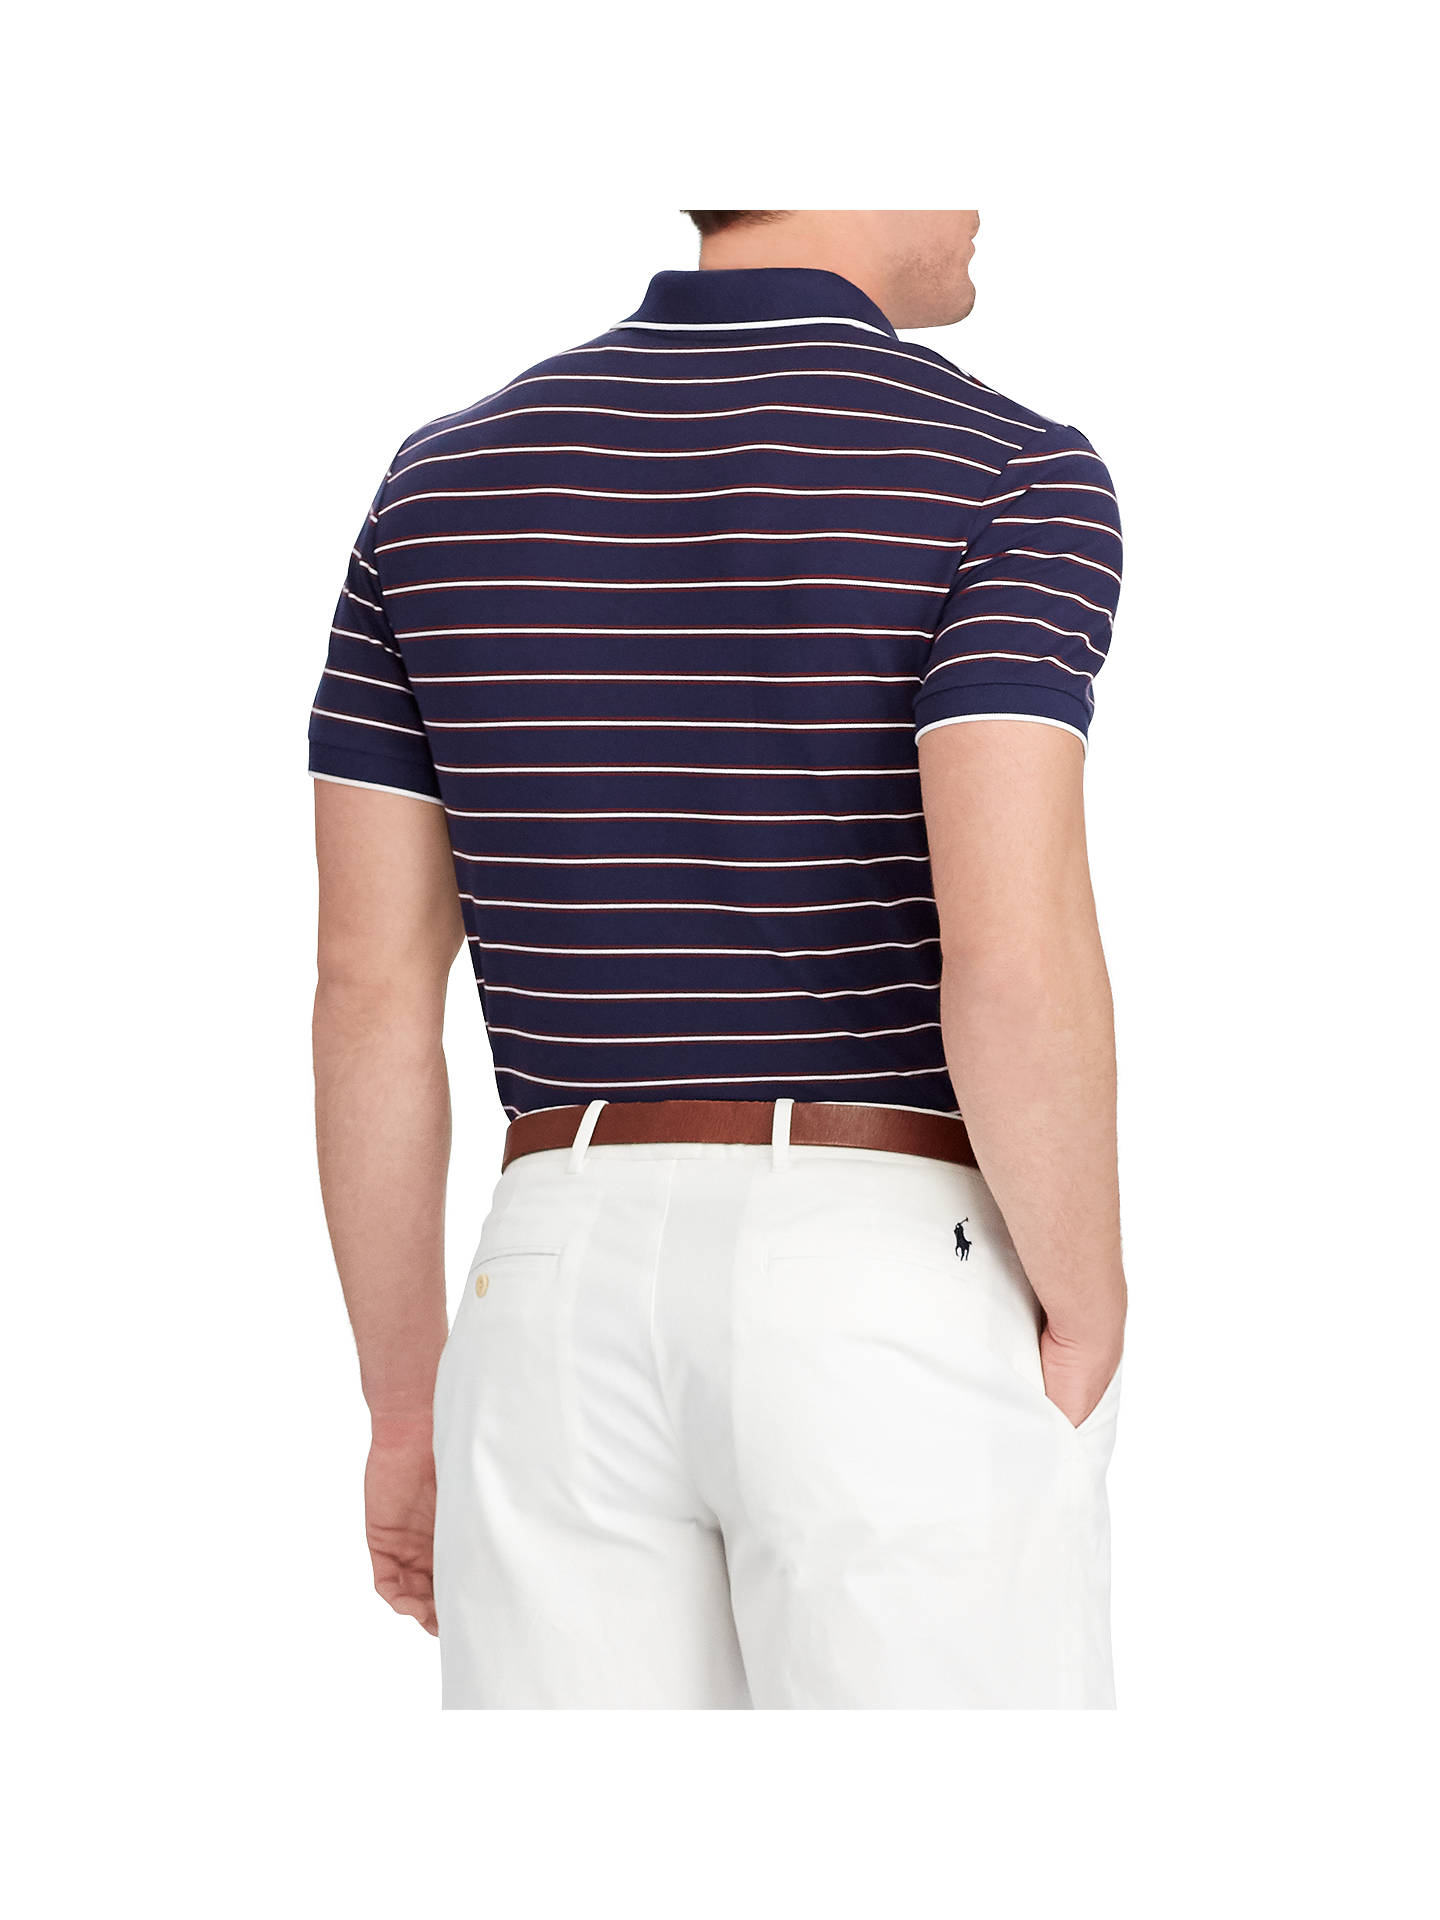 BuyPolo Golf by Ralph Lauren Short Sleeve Pique Polo Shirt, Navy/Wine/White, S Online at johnlewis.com